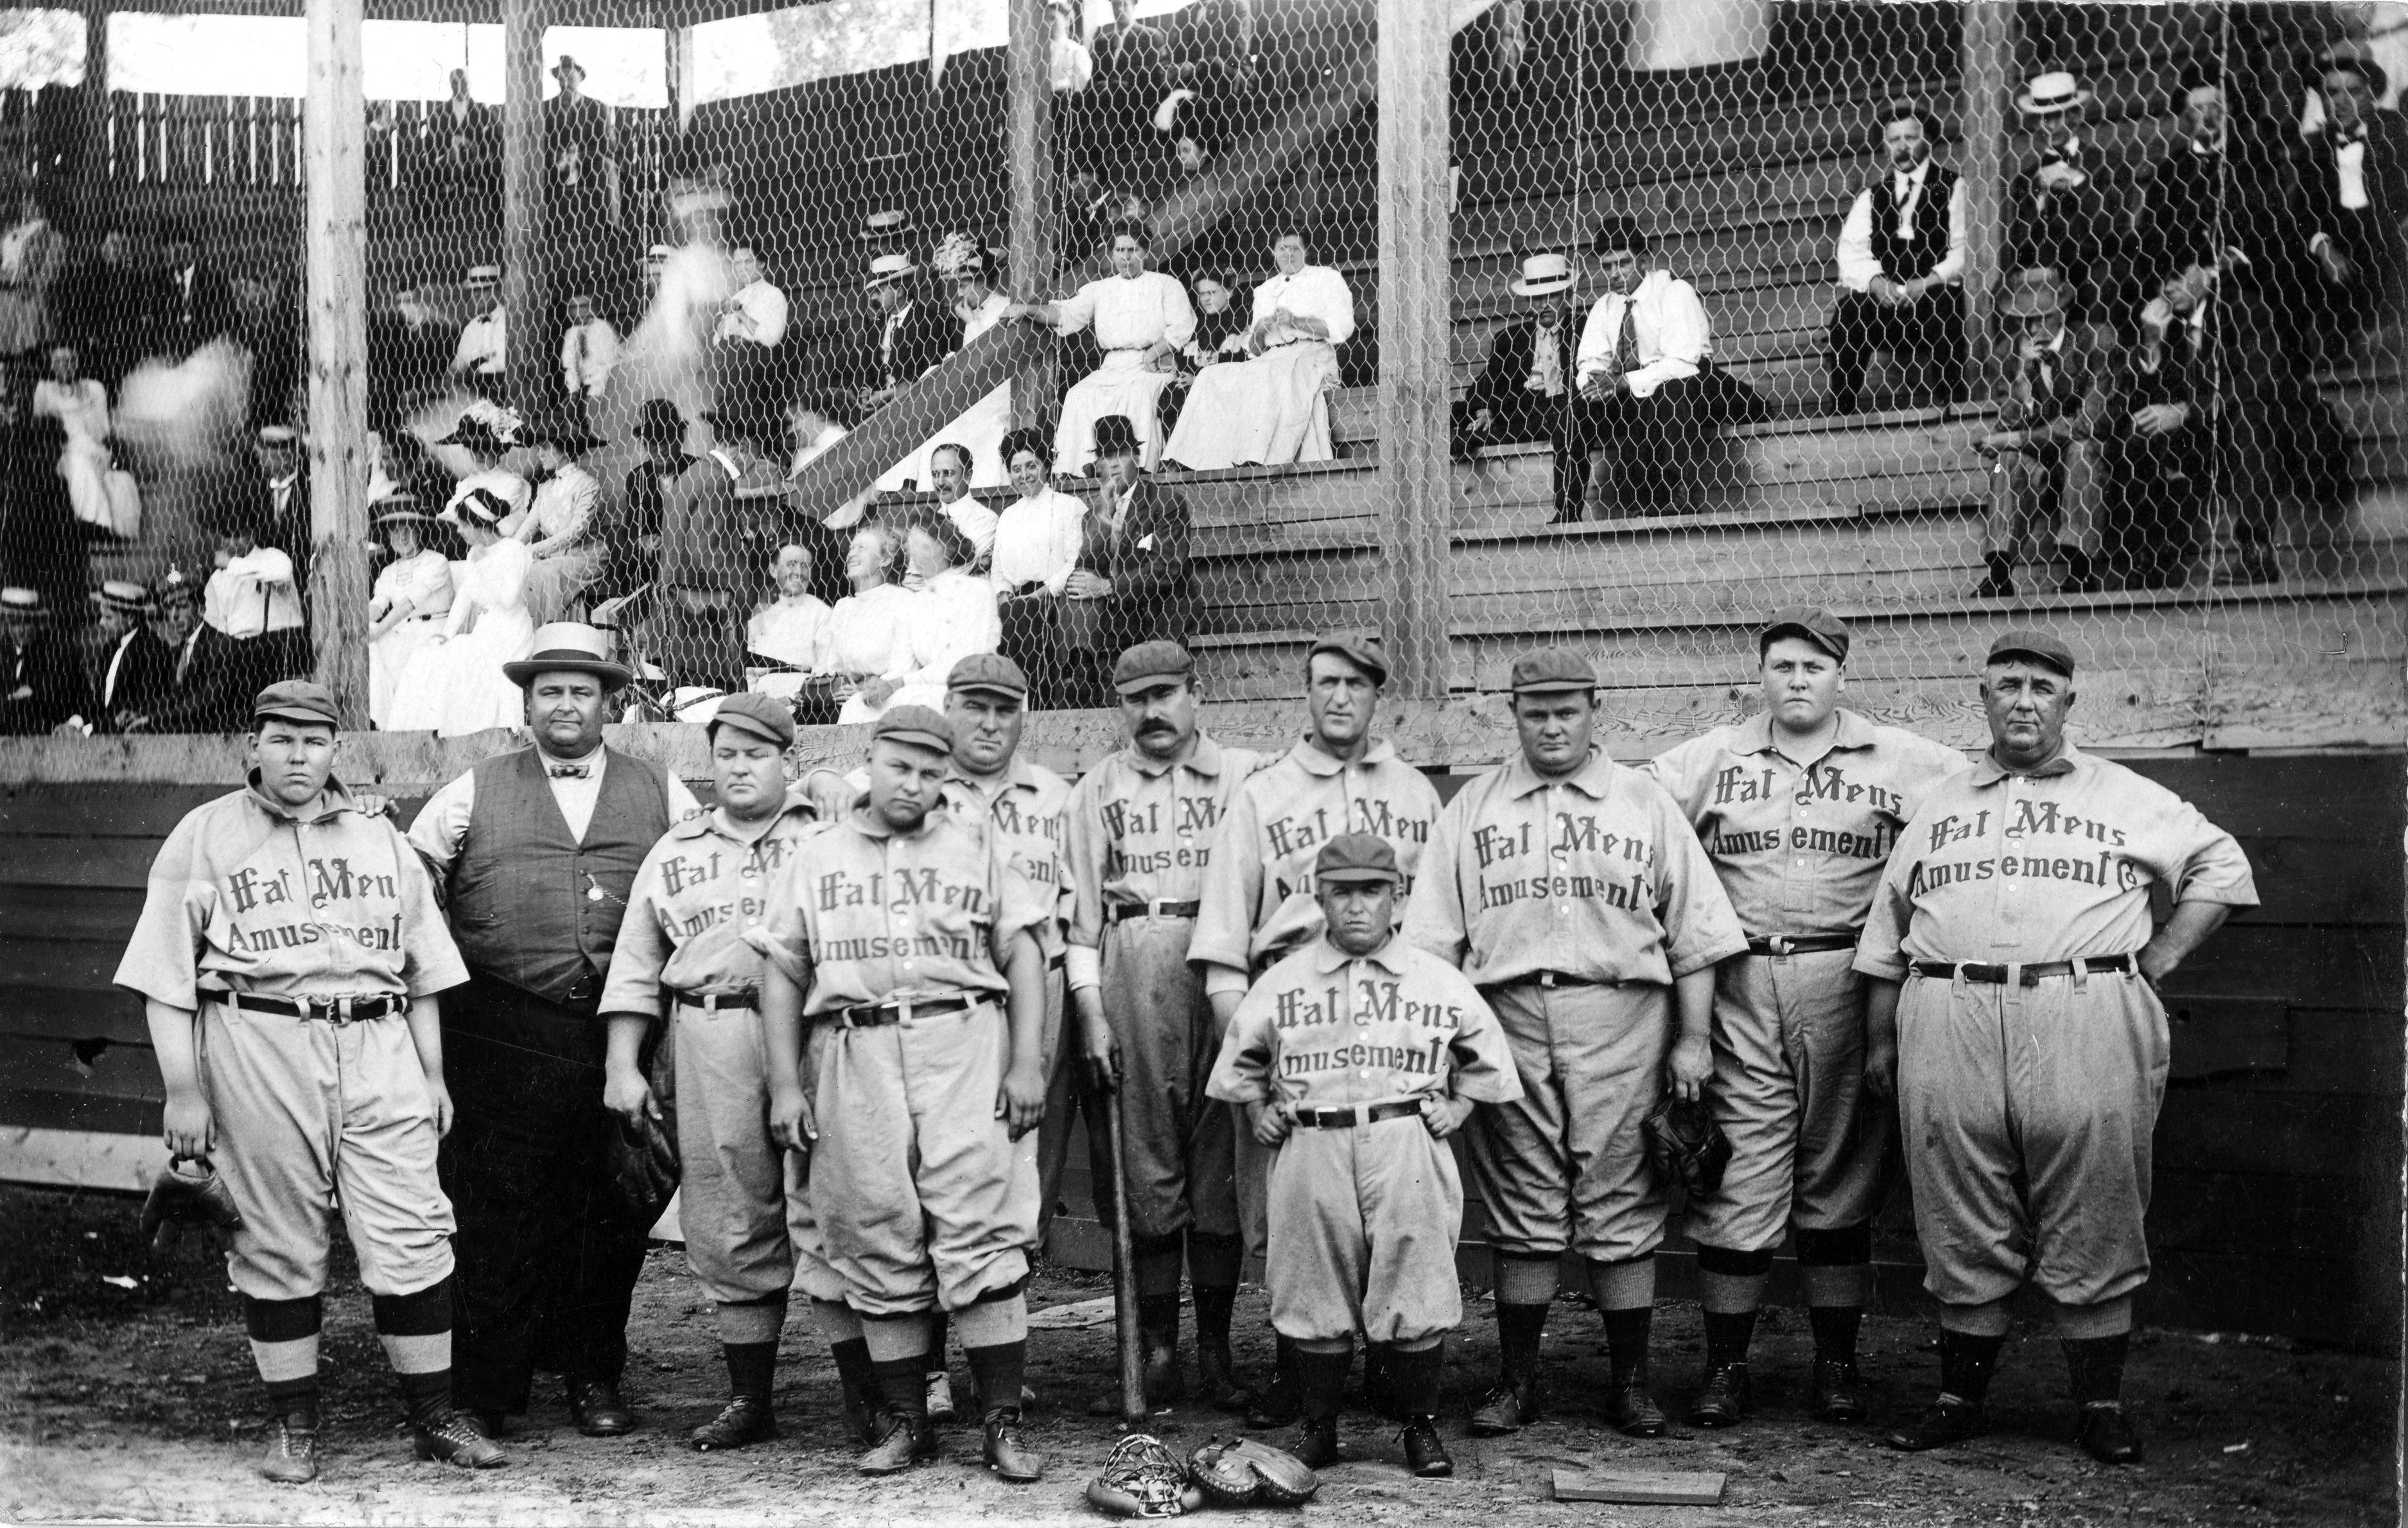 "Players on The Fat Man's Baseball Association, wear jerseys written with ""Fat Mens Amusement"" across it and pose in their home ballpark (unknown location) in 1910."